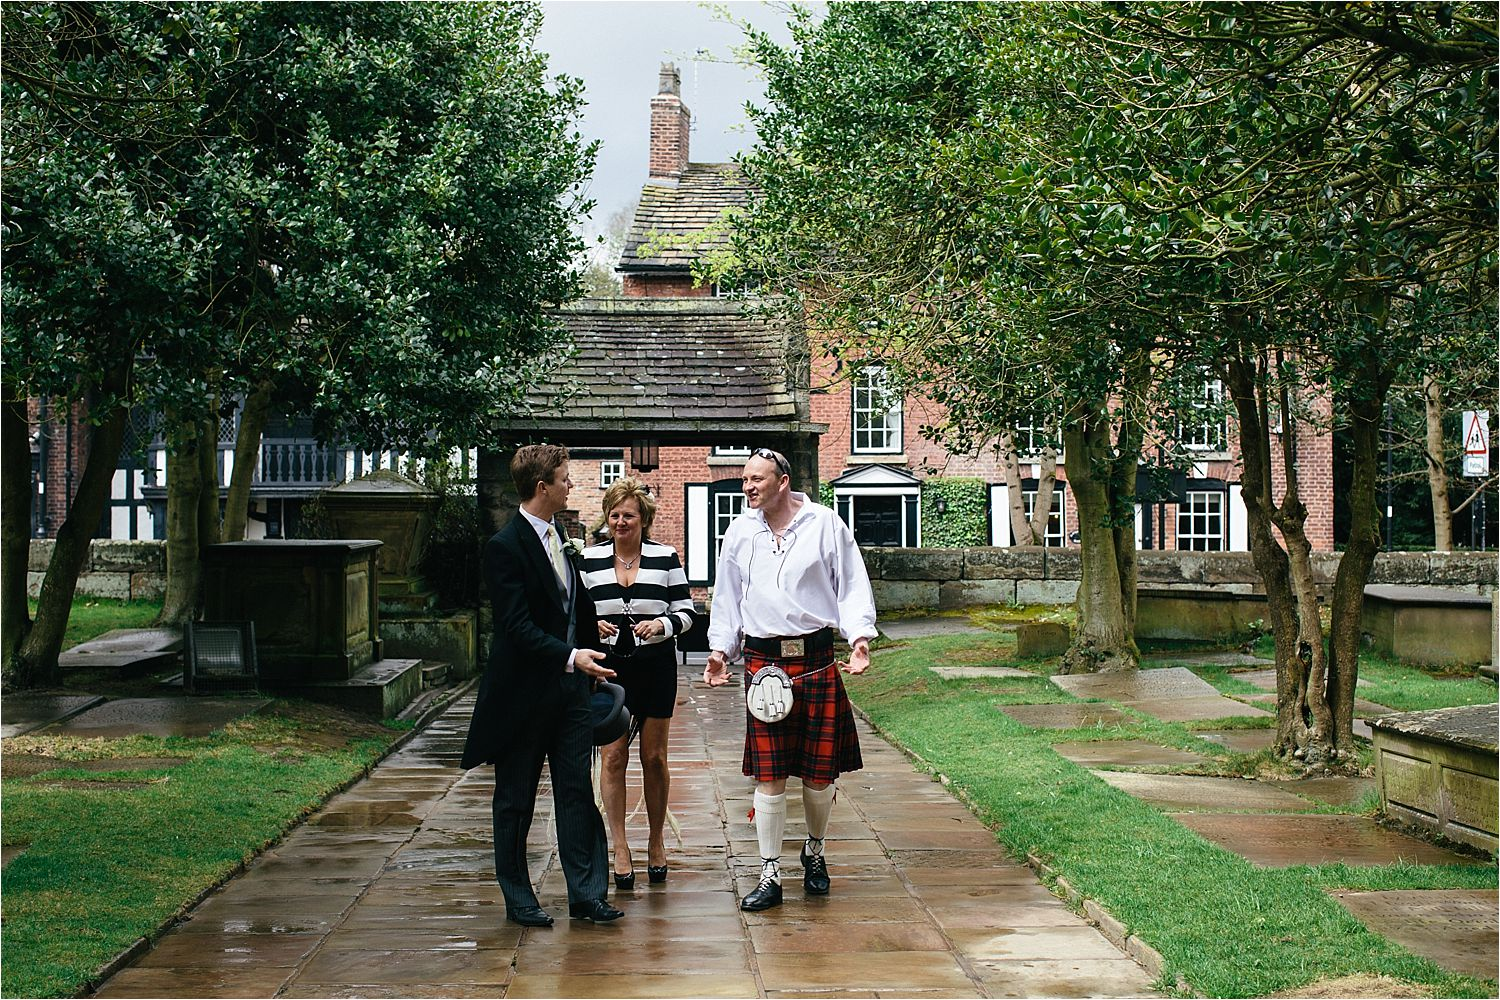 Kilt wearing wedding guest arrives at church for Cheshire wedding